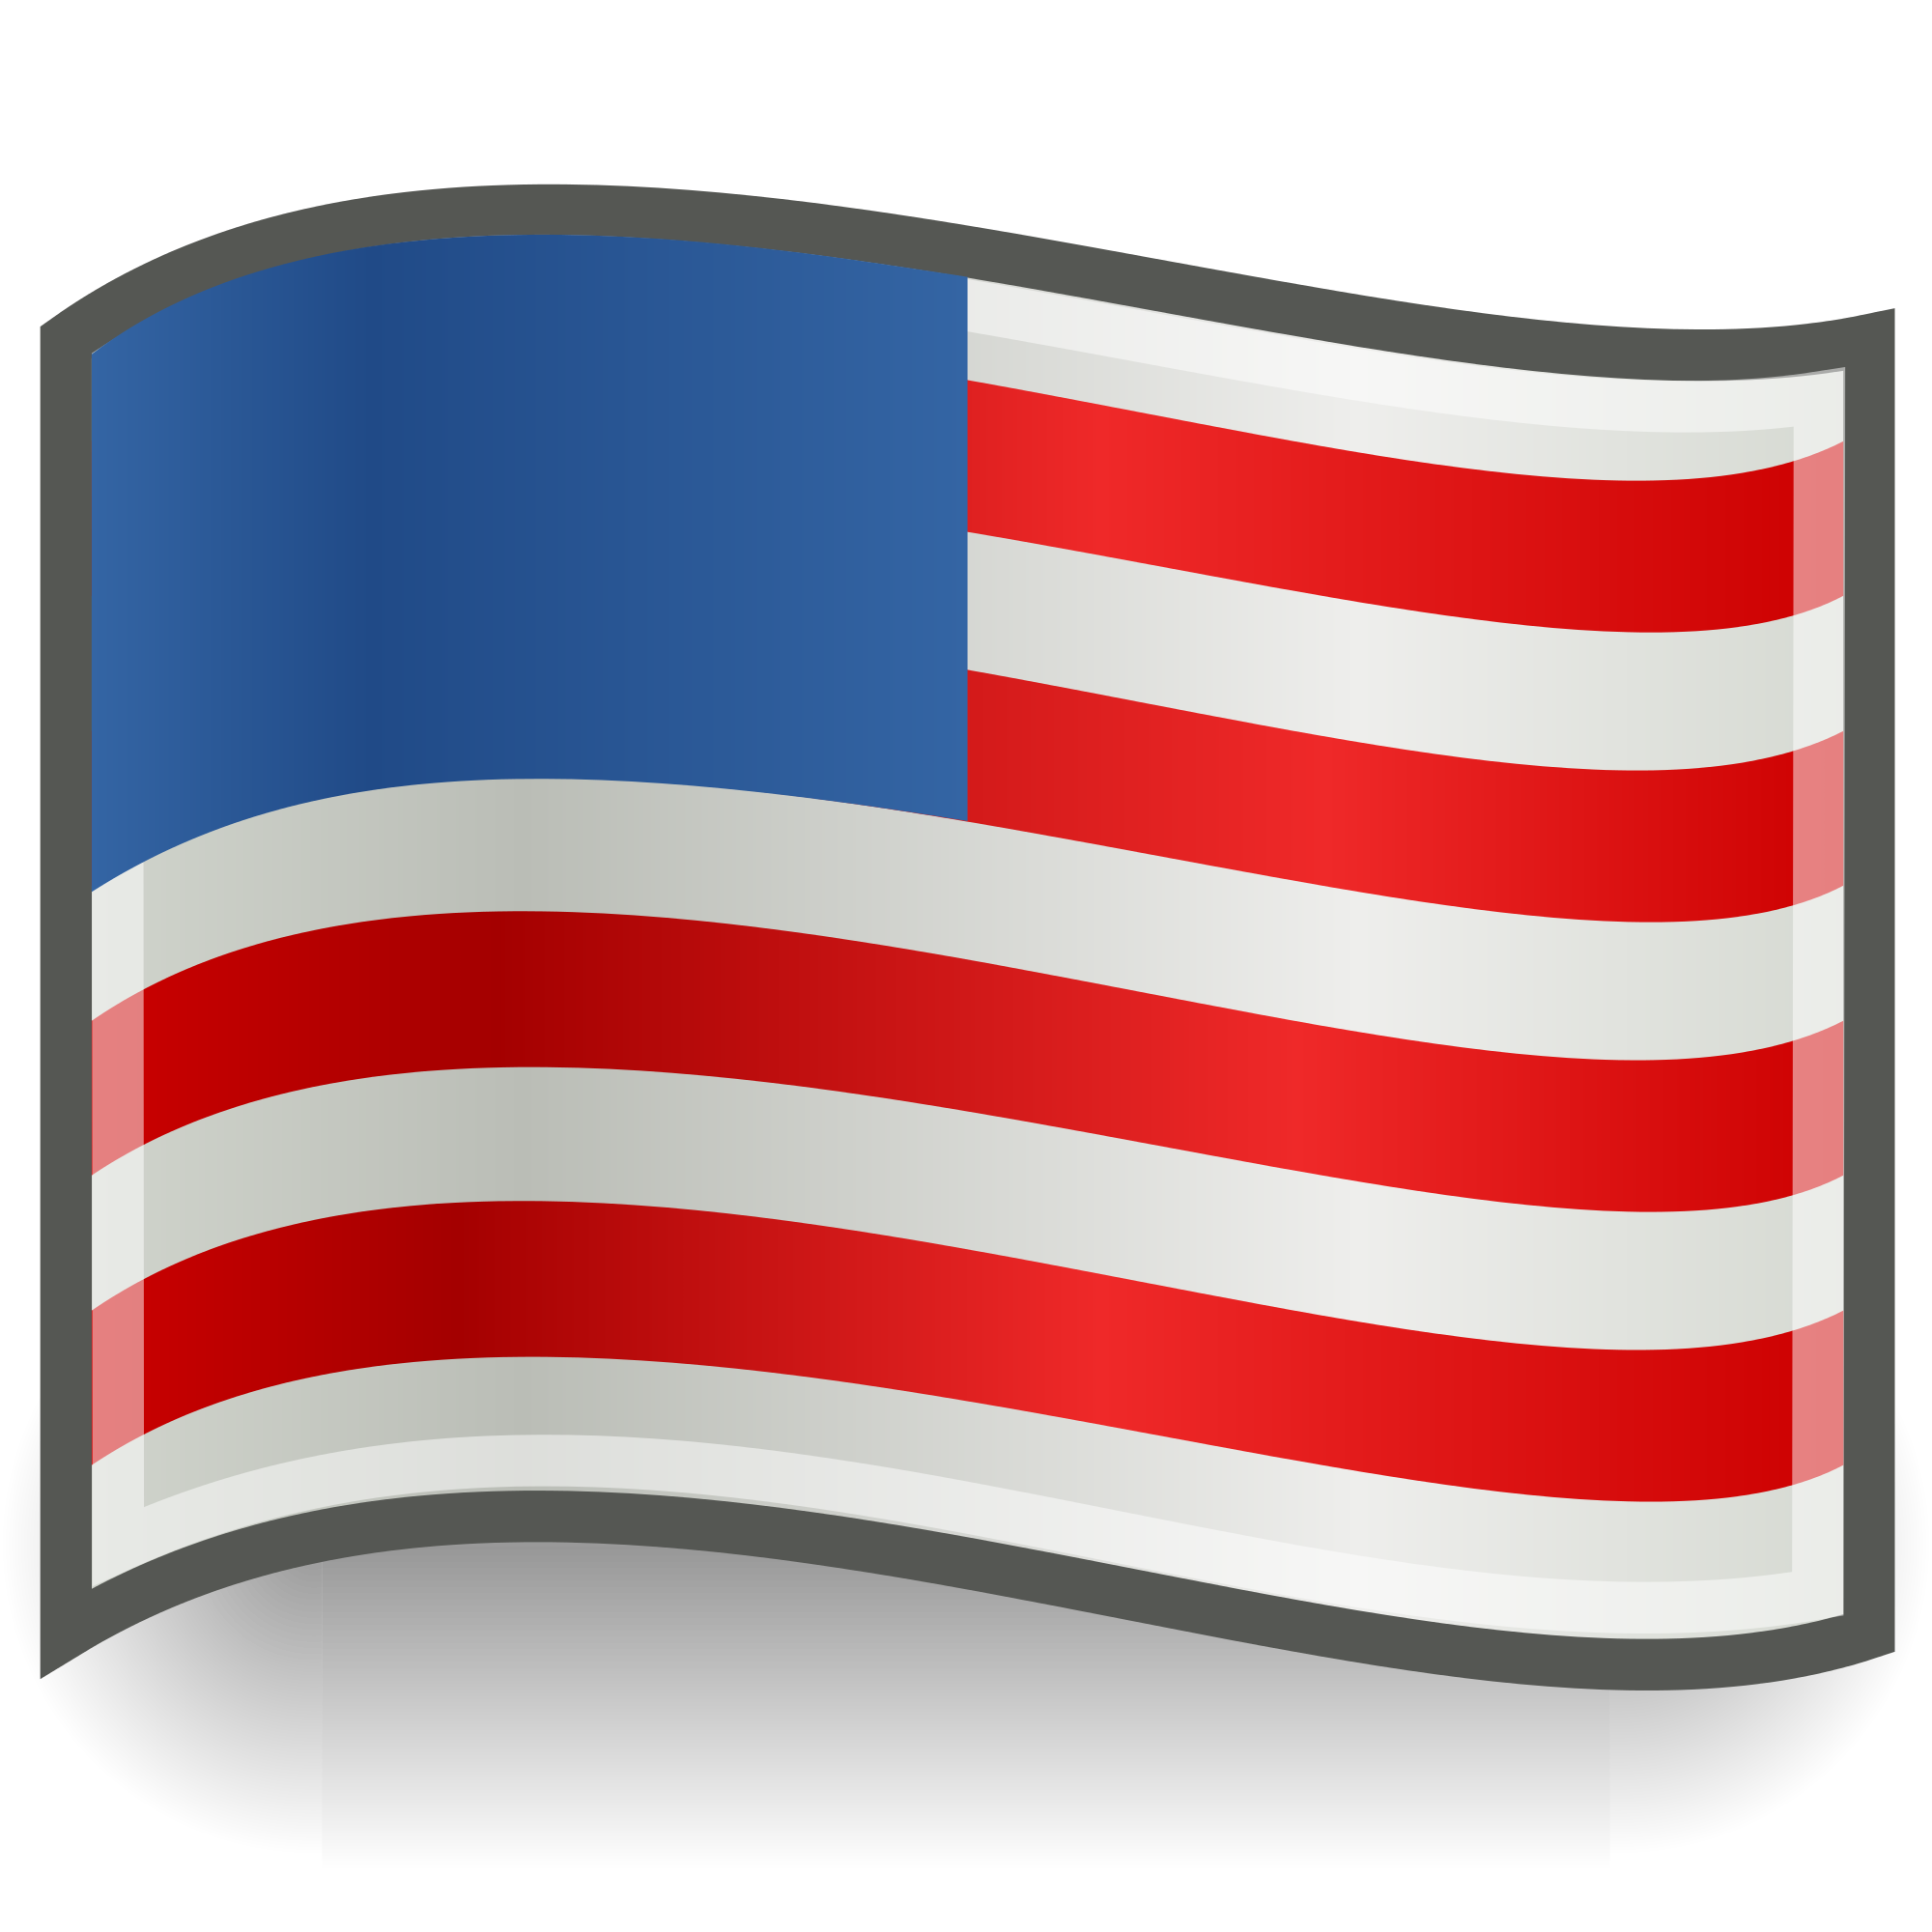 Us flag clip art picture freeuse library File:US Flag icon.svg - Wikimedia Commons picture freeuse library